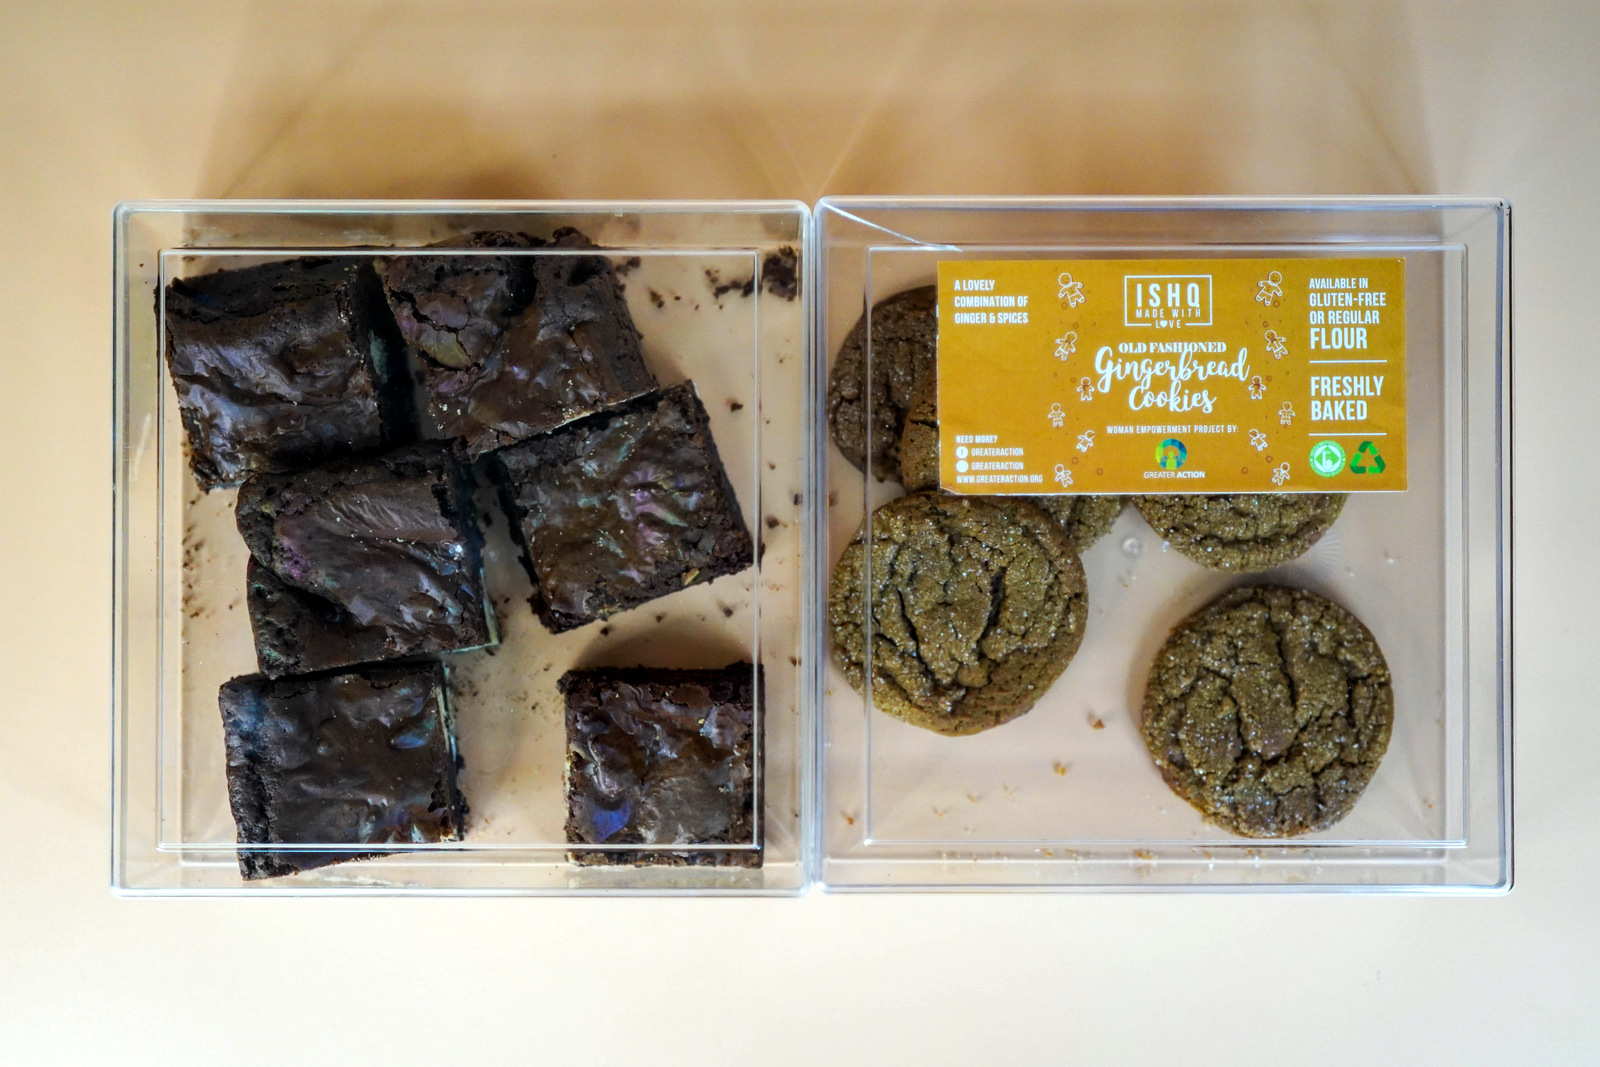 greater action baking: support refugee communities by buying cookies & brownies